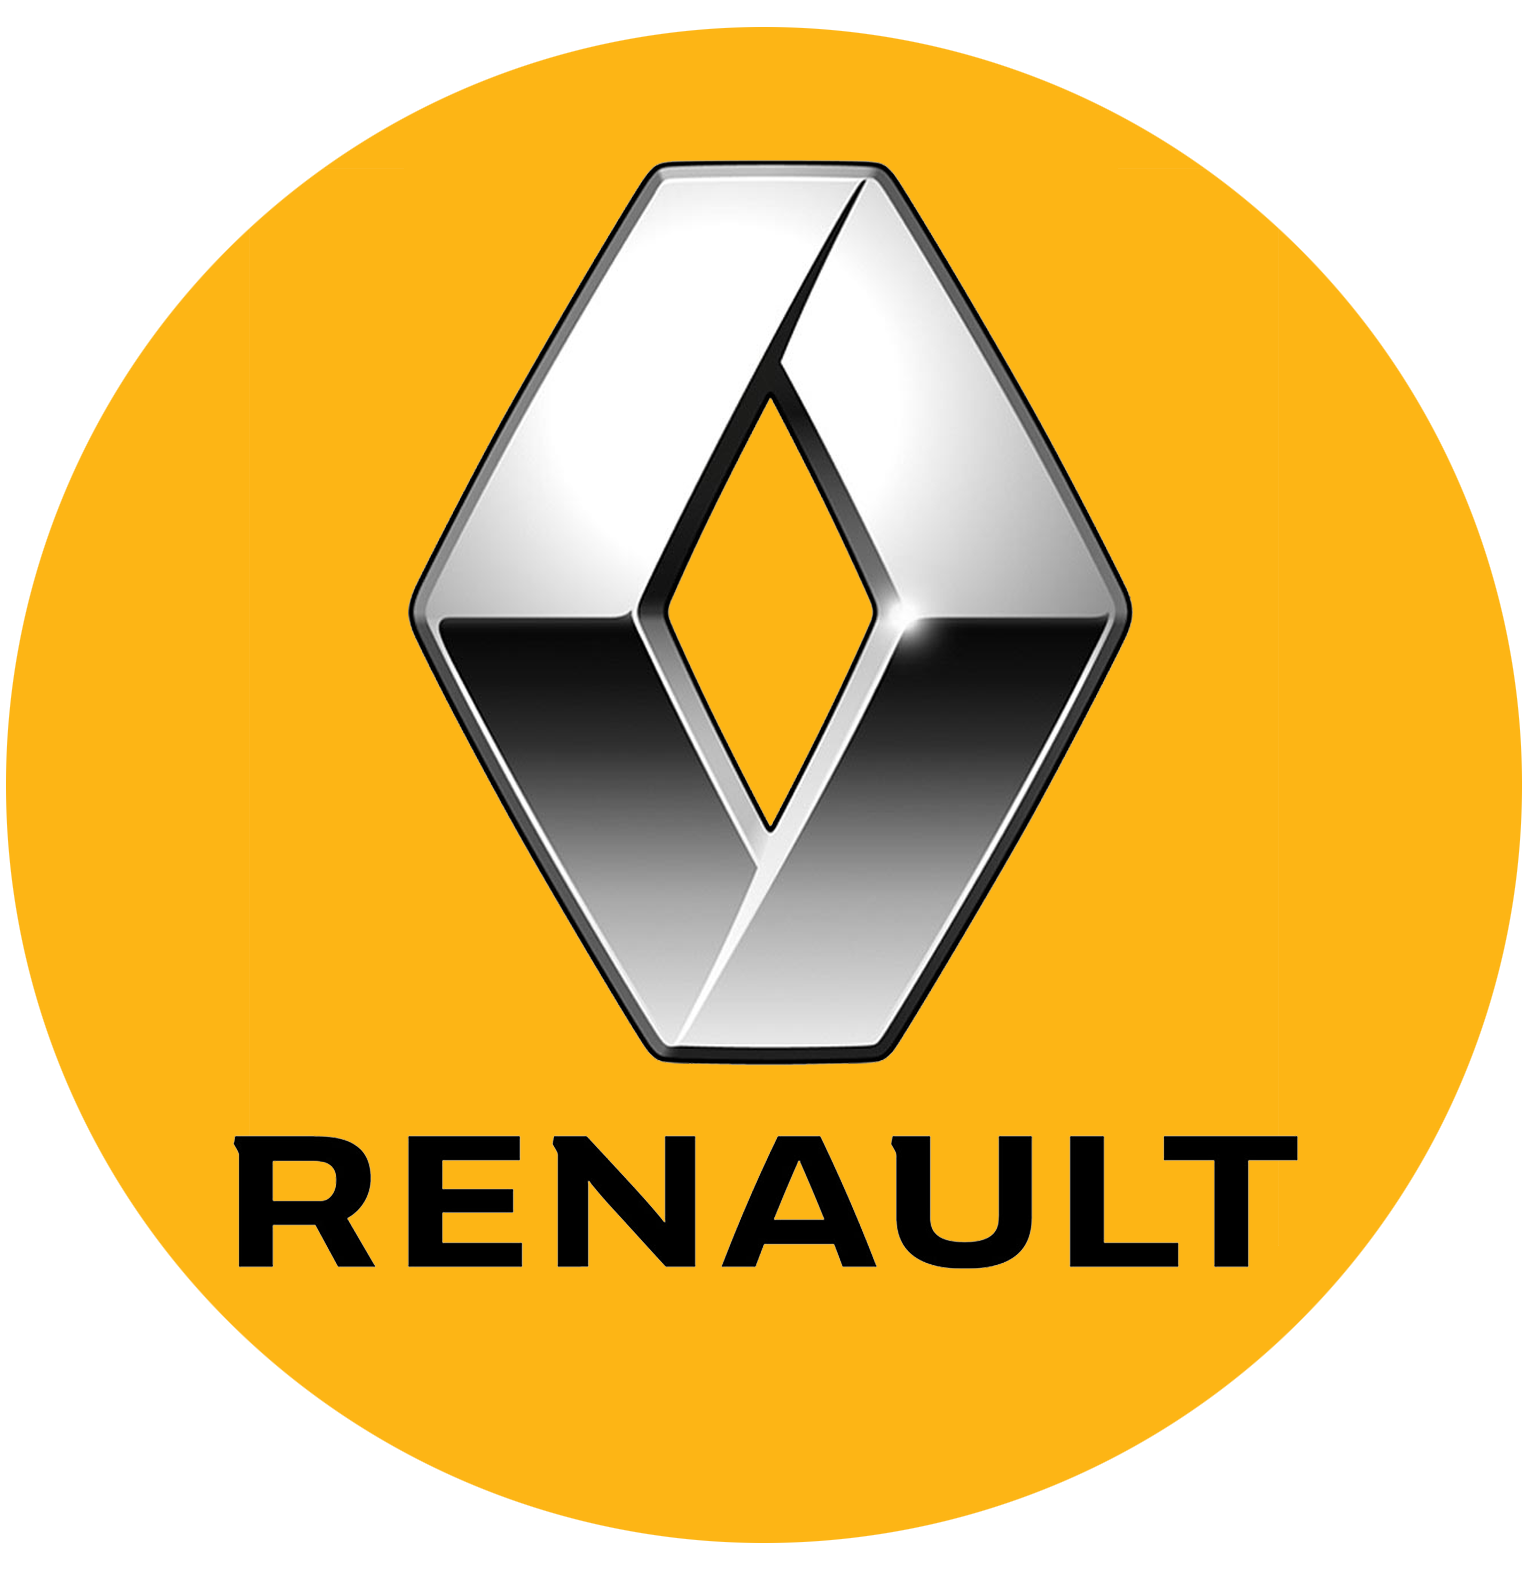 Garage Renault Saint Sebastien Nancy